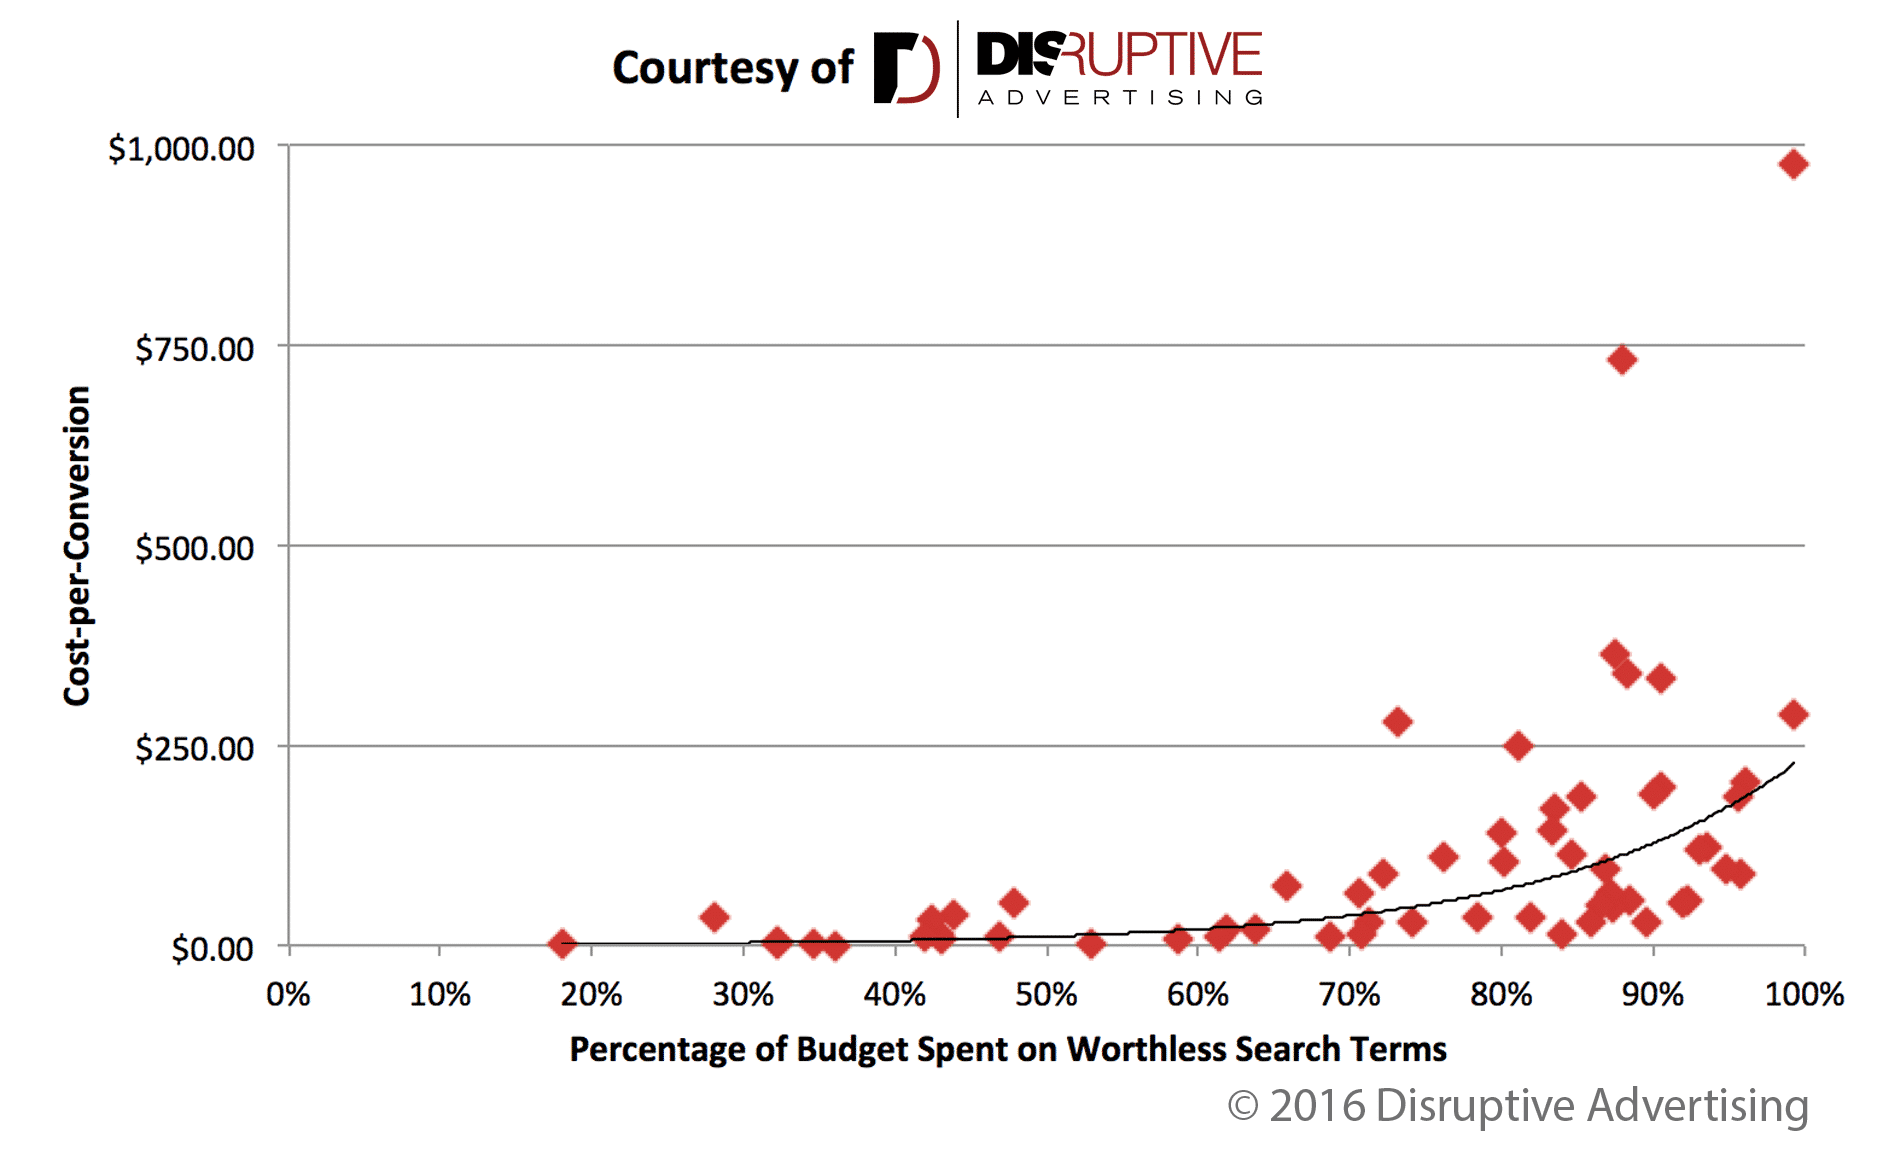 Cost-per-Conversion vs Percent of Wasted Ad Spend | Disruptive Advertising